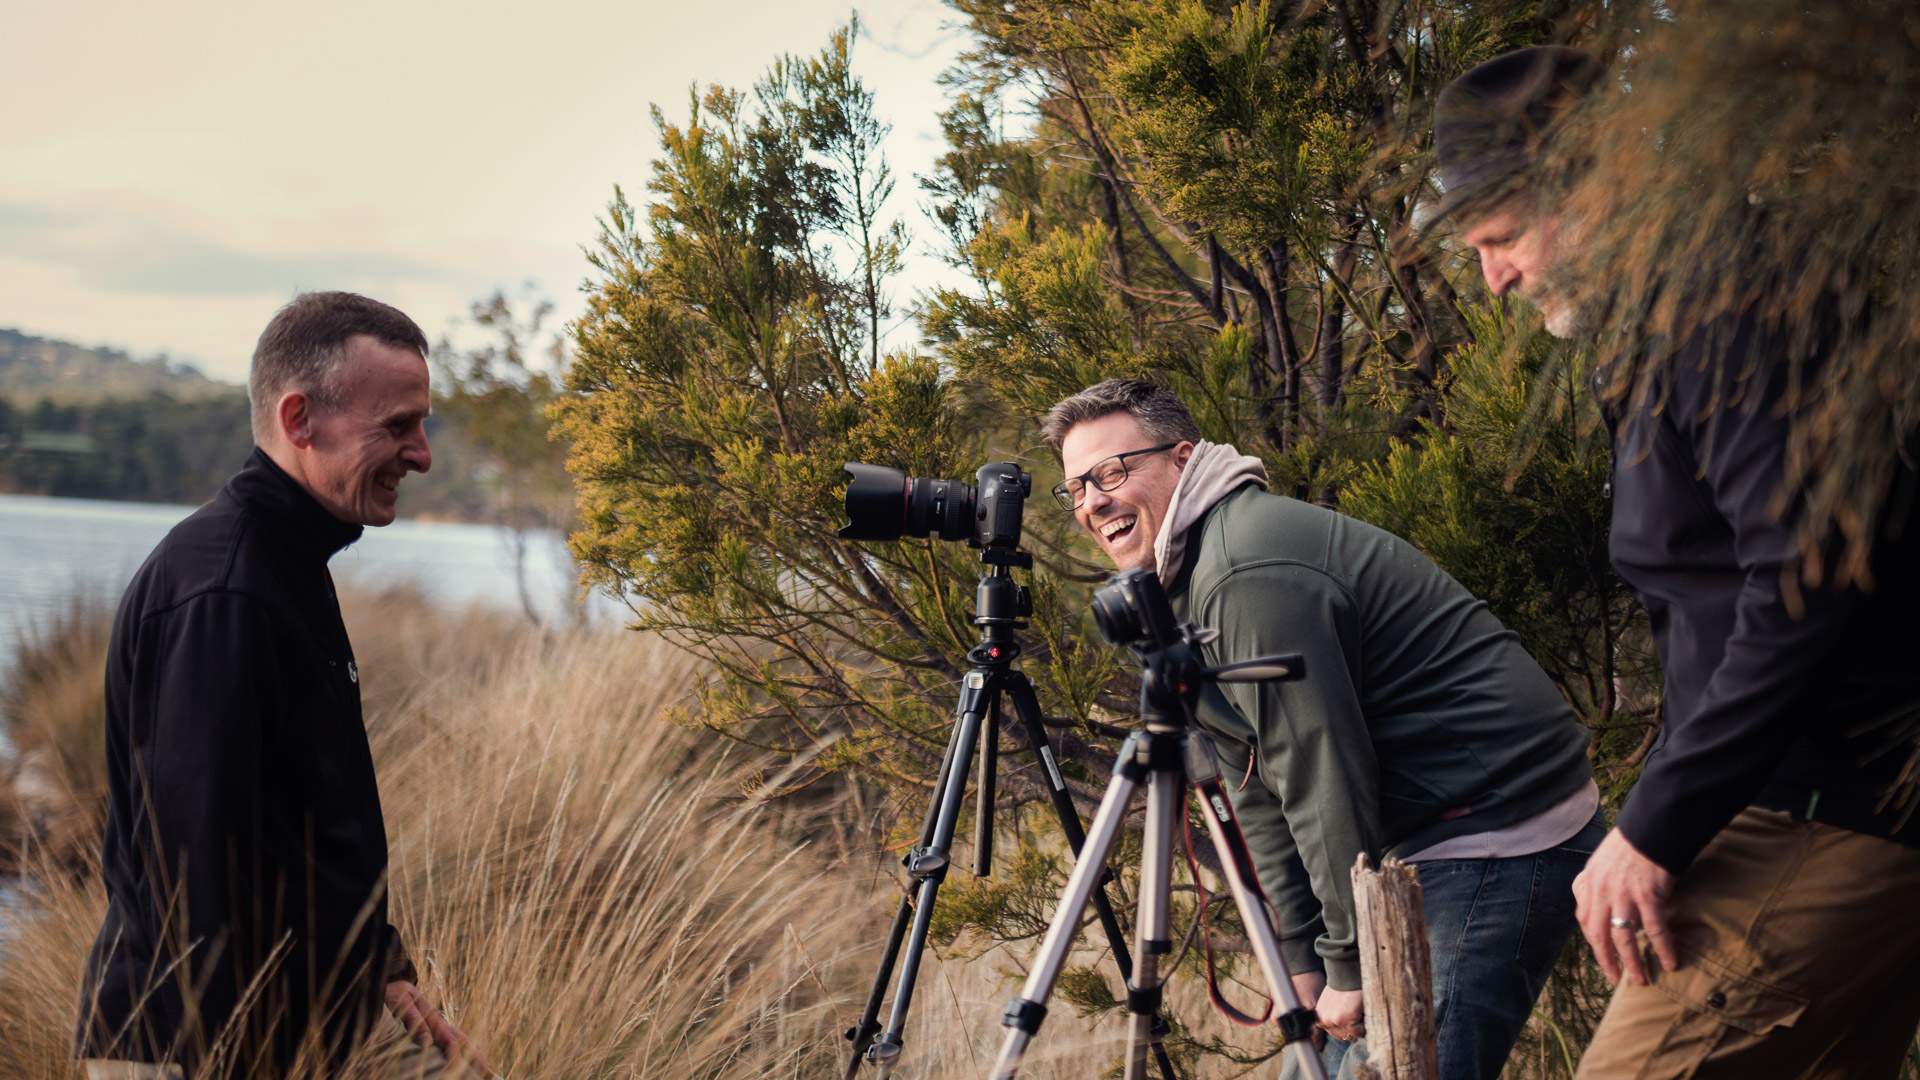 Private Outdoor Photography Tuition in Hobart, Tasmania